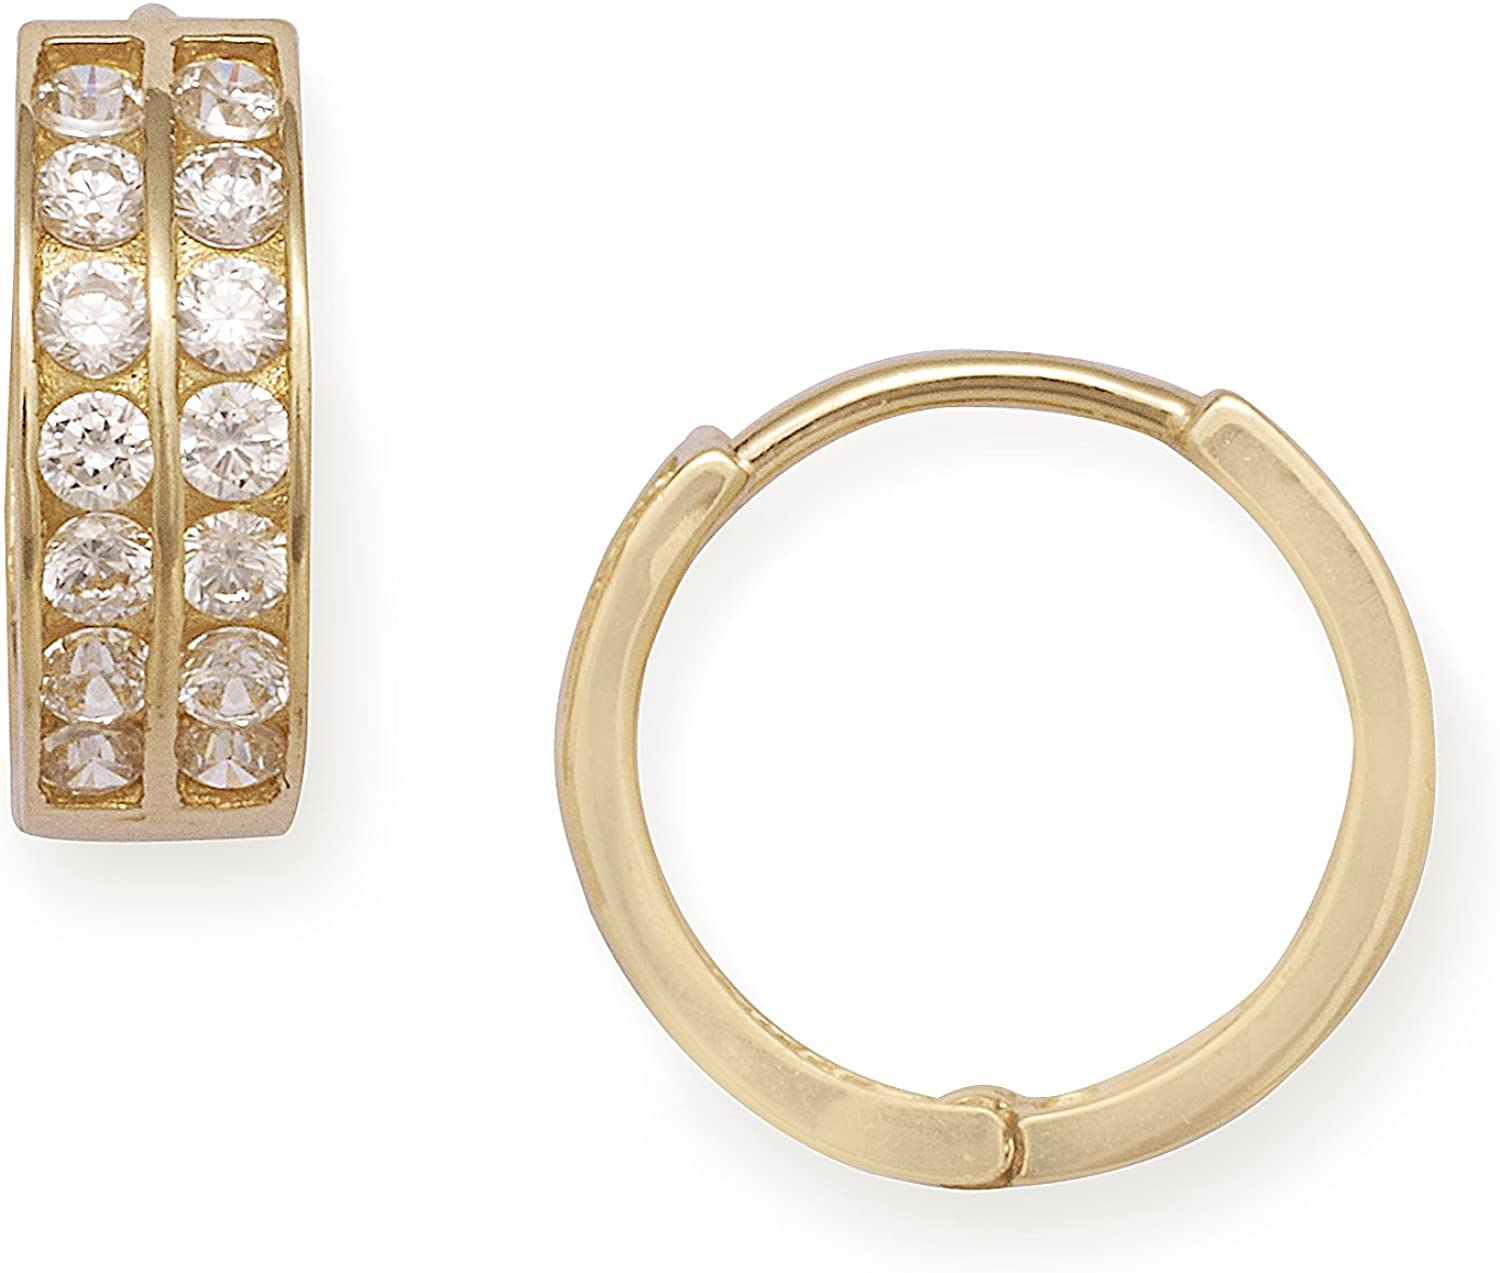 14ct Yellow gold Cubic Zirconia Small 2 Row Hinged Earrings - Measures 11x11mm